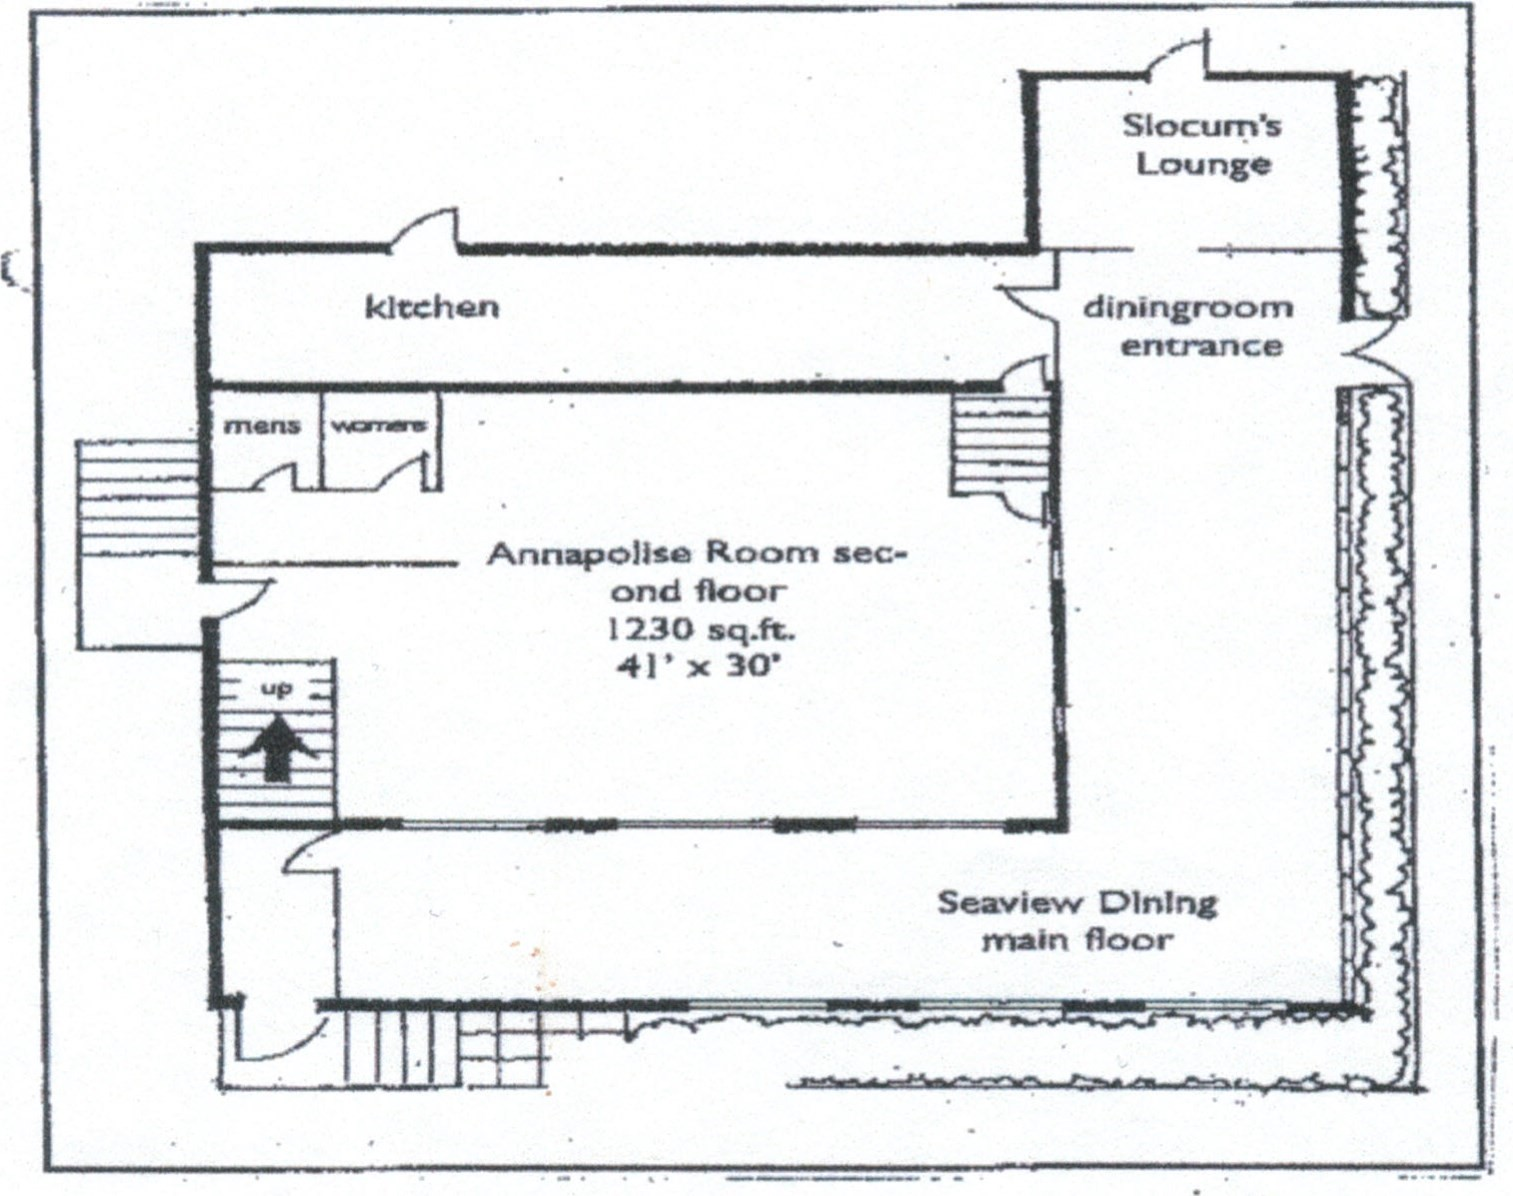 annapolise room plan